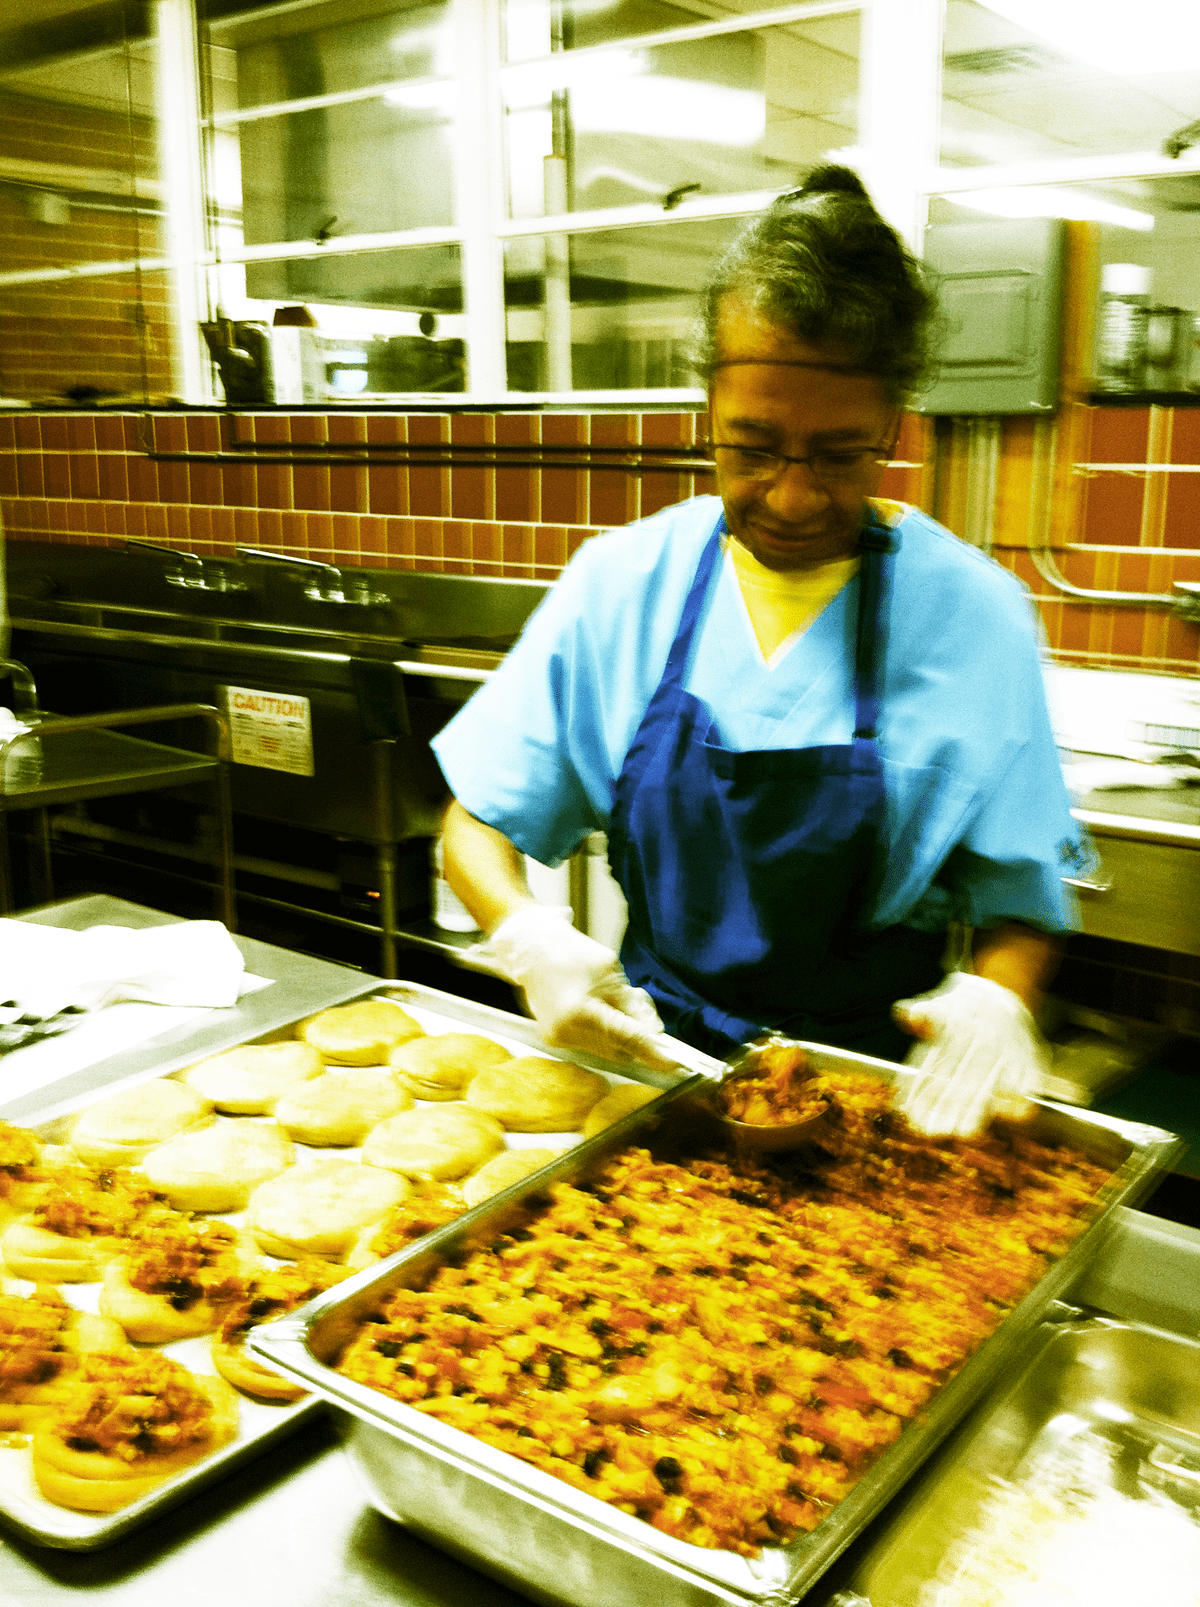 Cafeteria worker preparing meals as part of Chef Challenge.